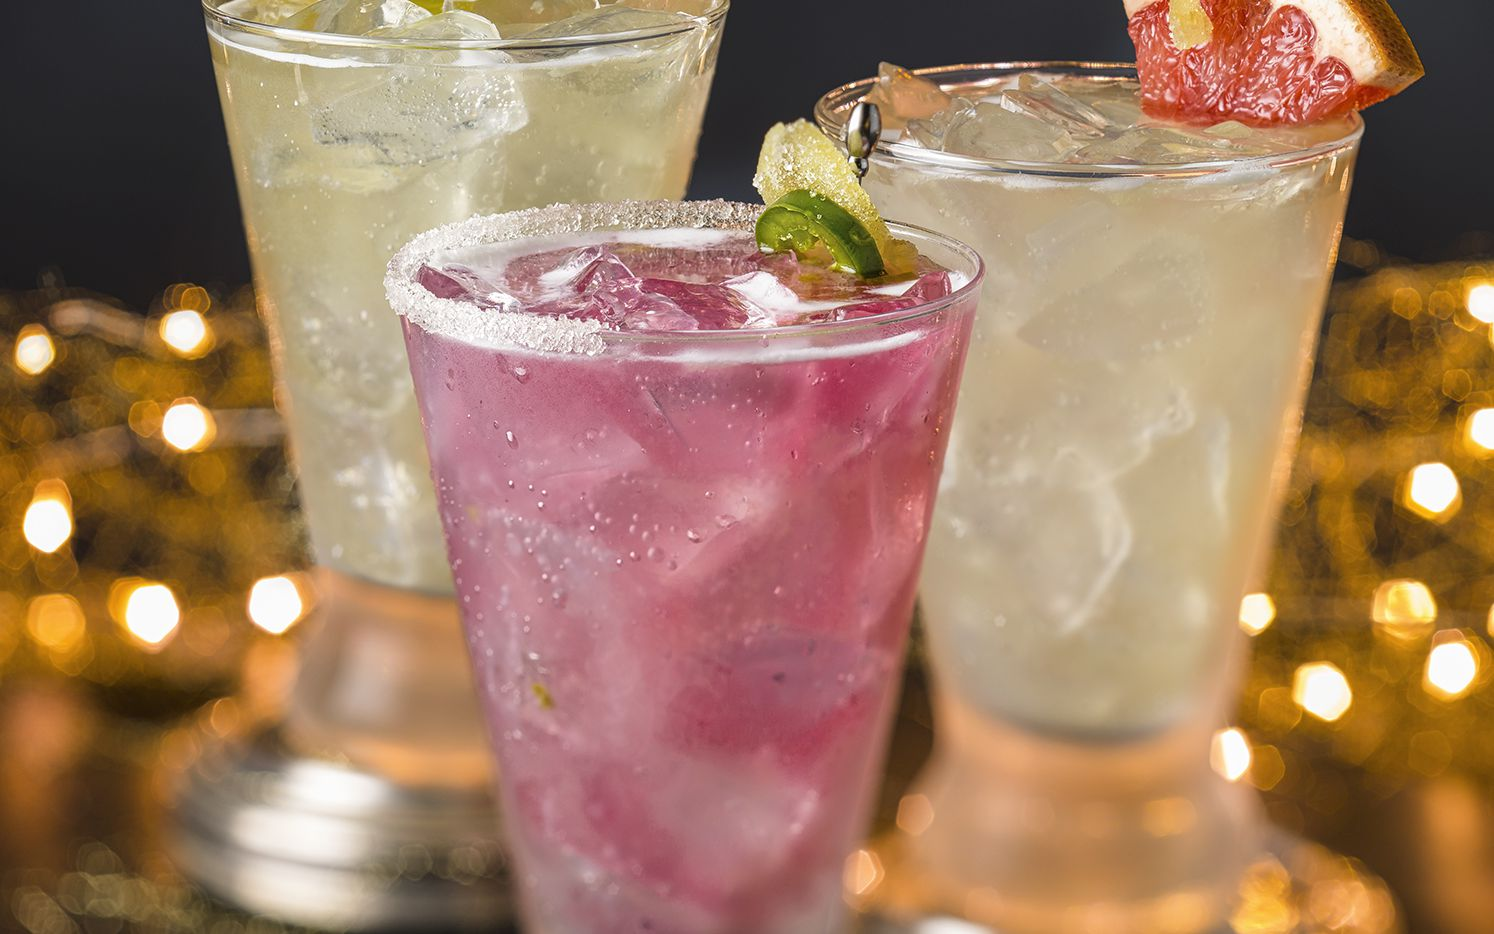 Cantina Laredo will offer a Three Wise Mules drink special during the holiday season. They are, from left, the Classic Mule, Mezcal Mule and Mexi-Mule. They go for $12 a pop.